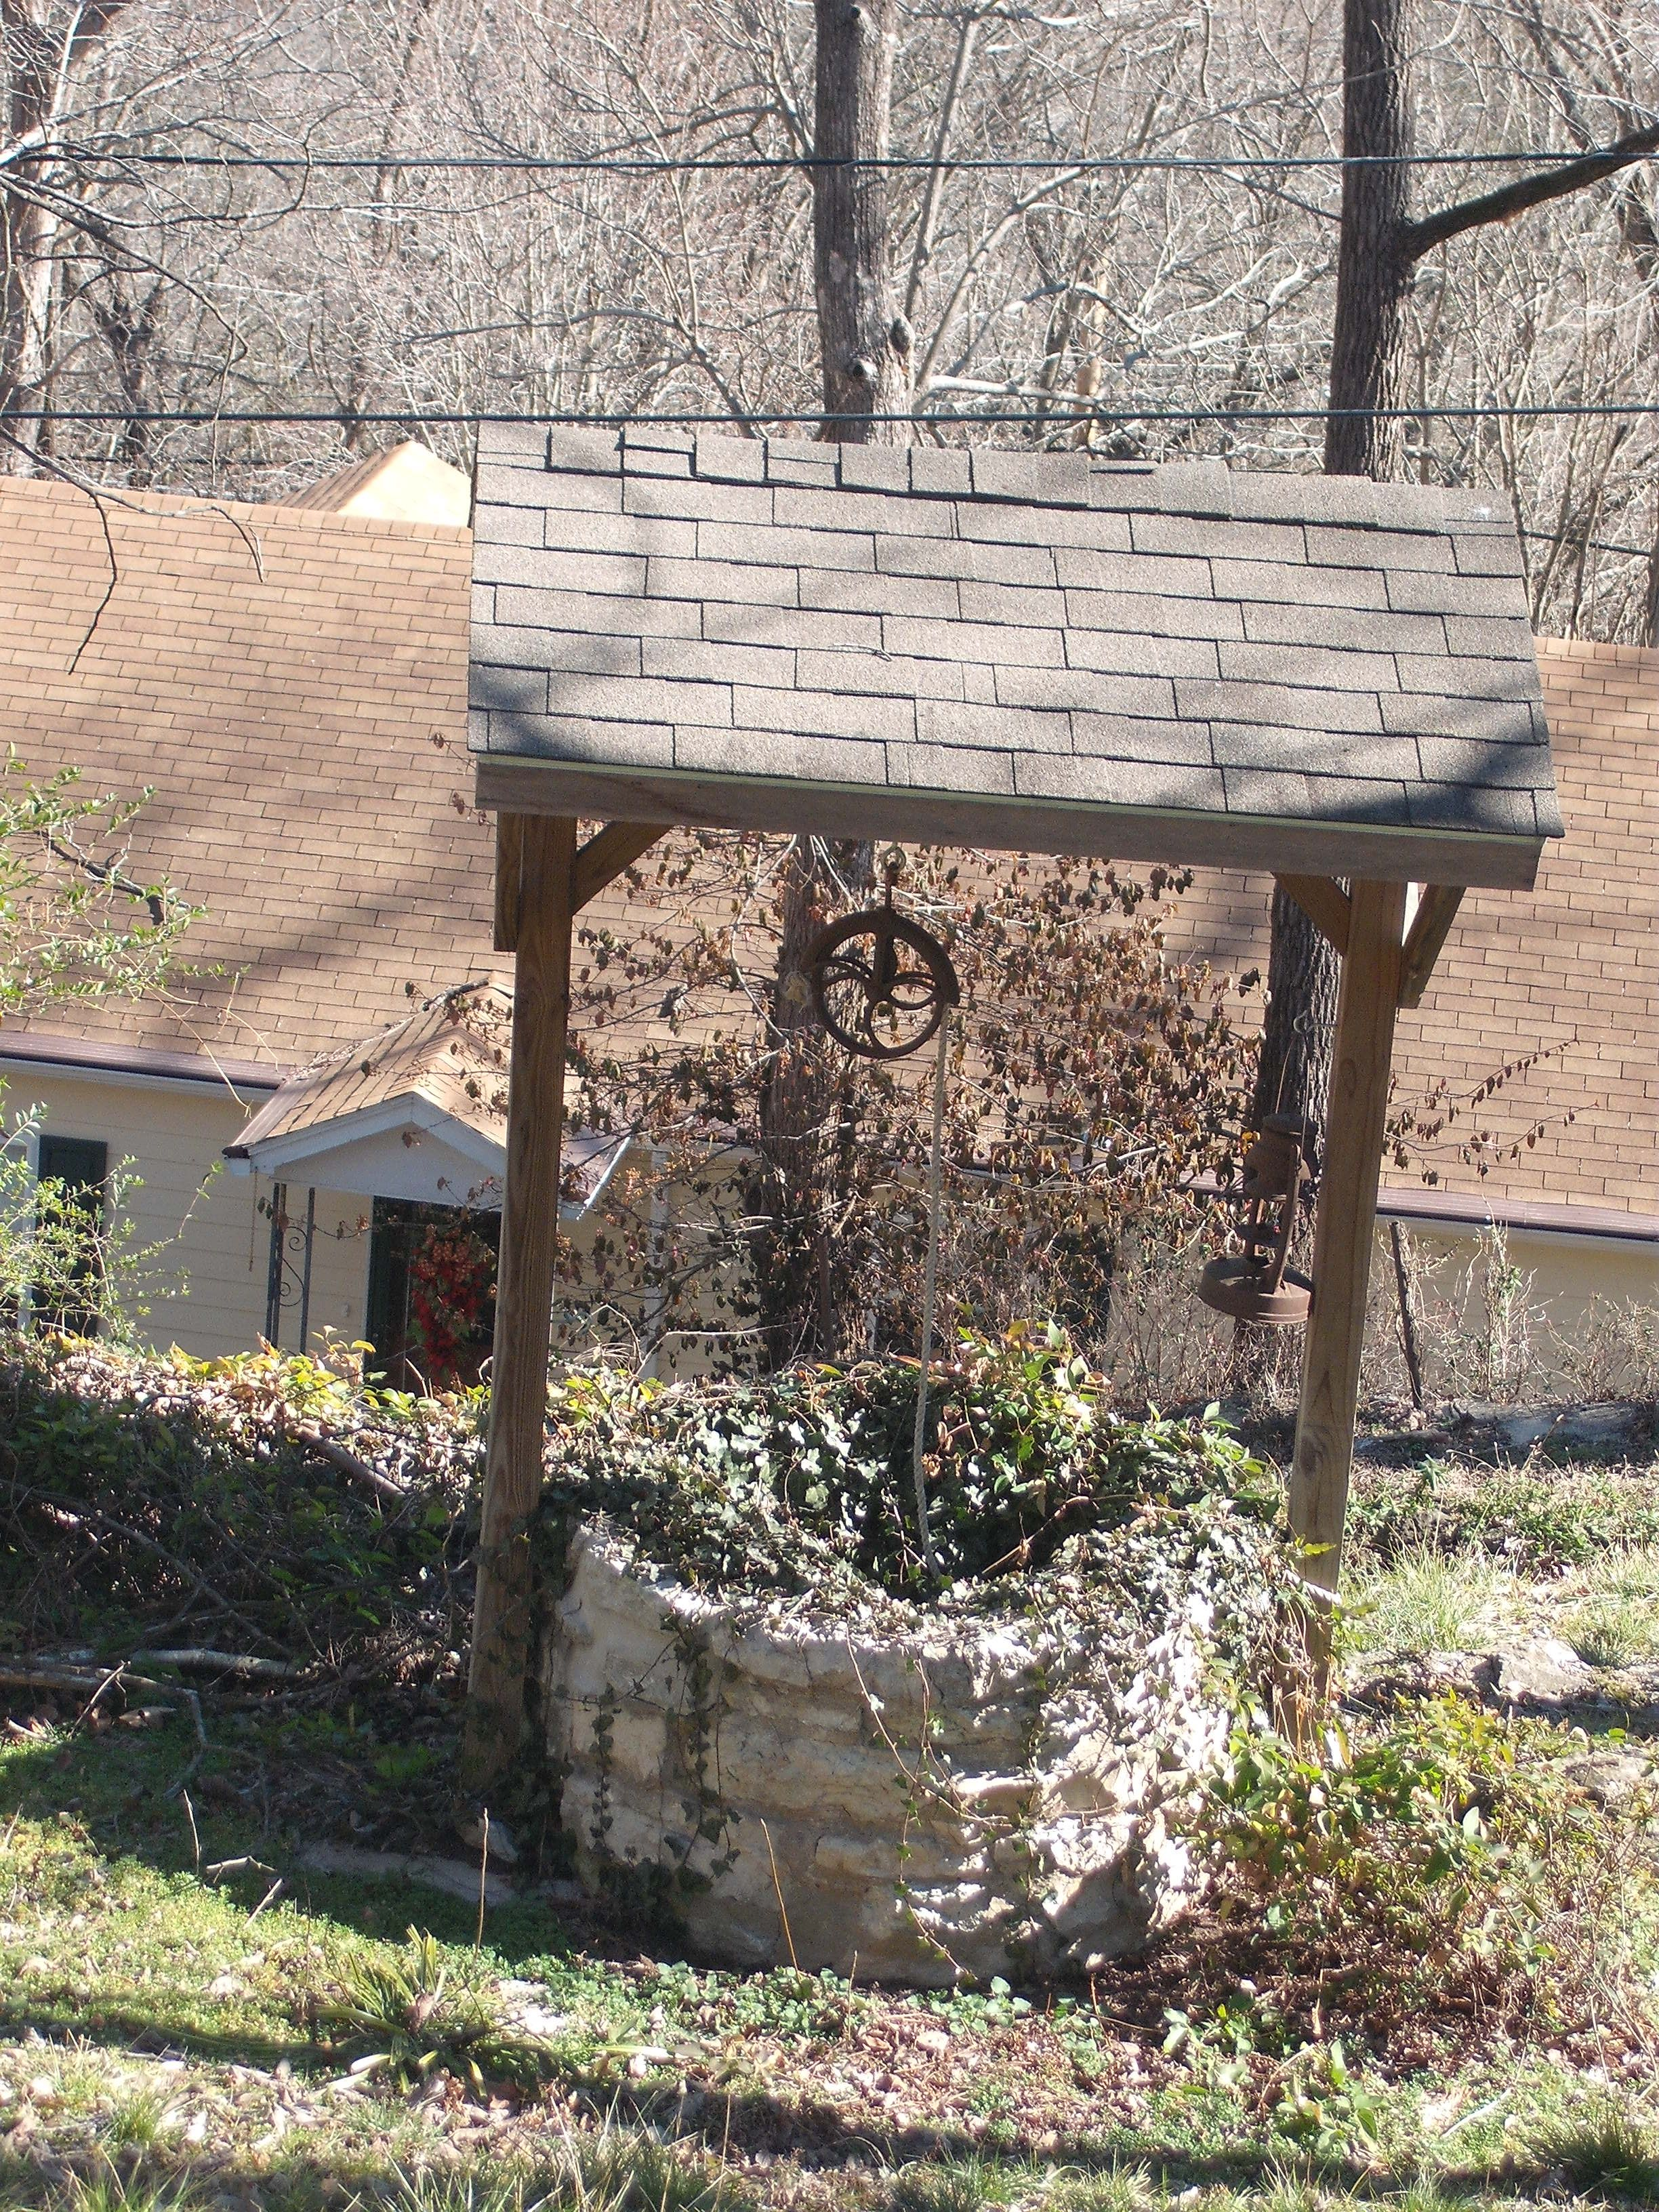 Old Well In Yard Of Victorian Home Eureka Springs Arkansas Water Well Outdoor Garden Old Victorian Homes